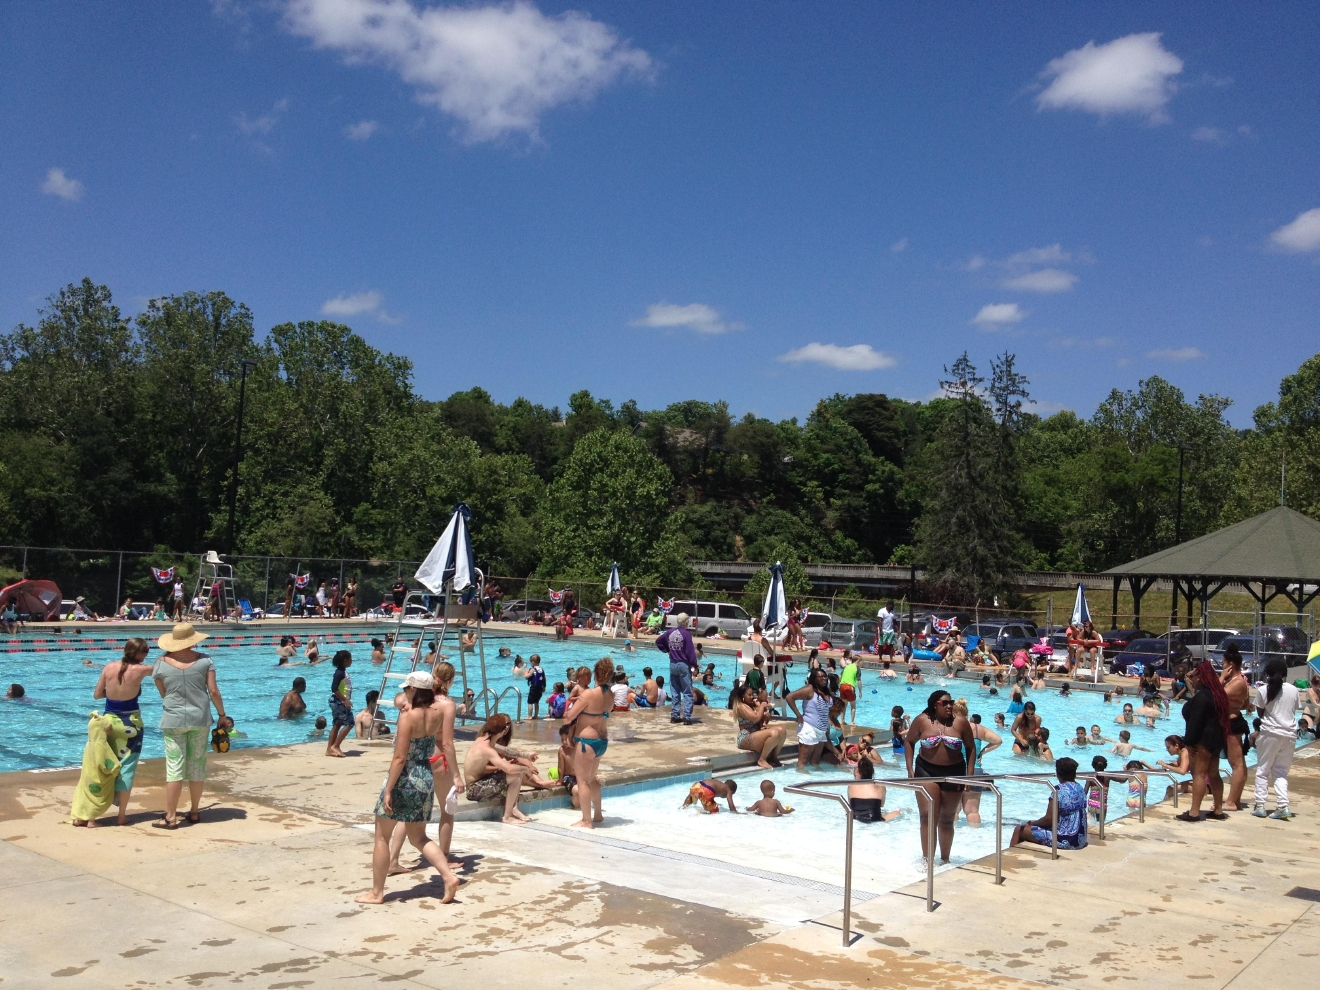 City of asheville pools opening for the summer wlos for Opening pool for summer